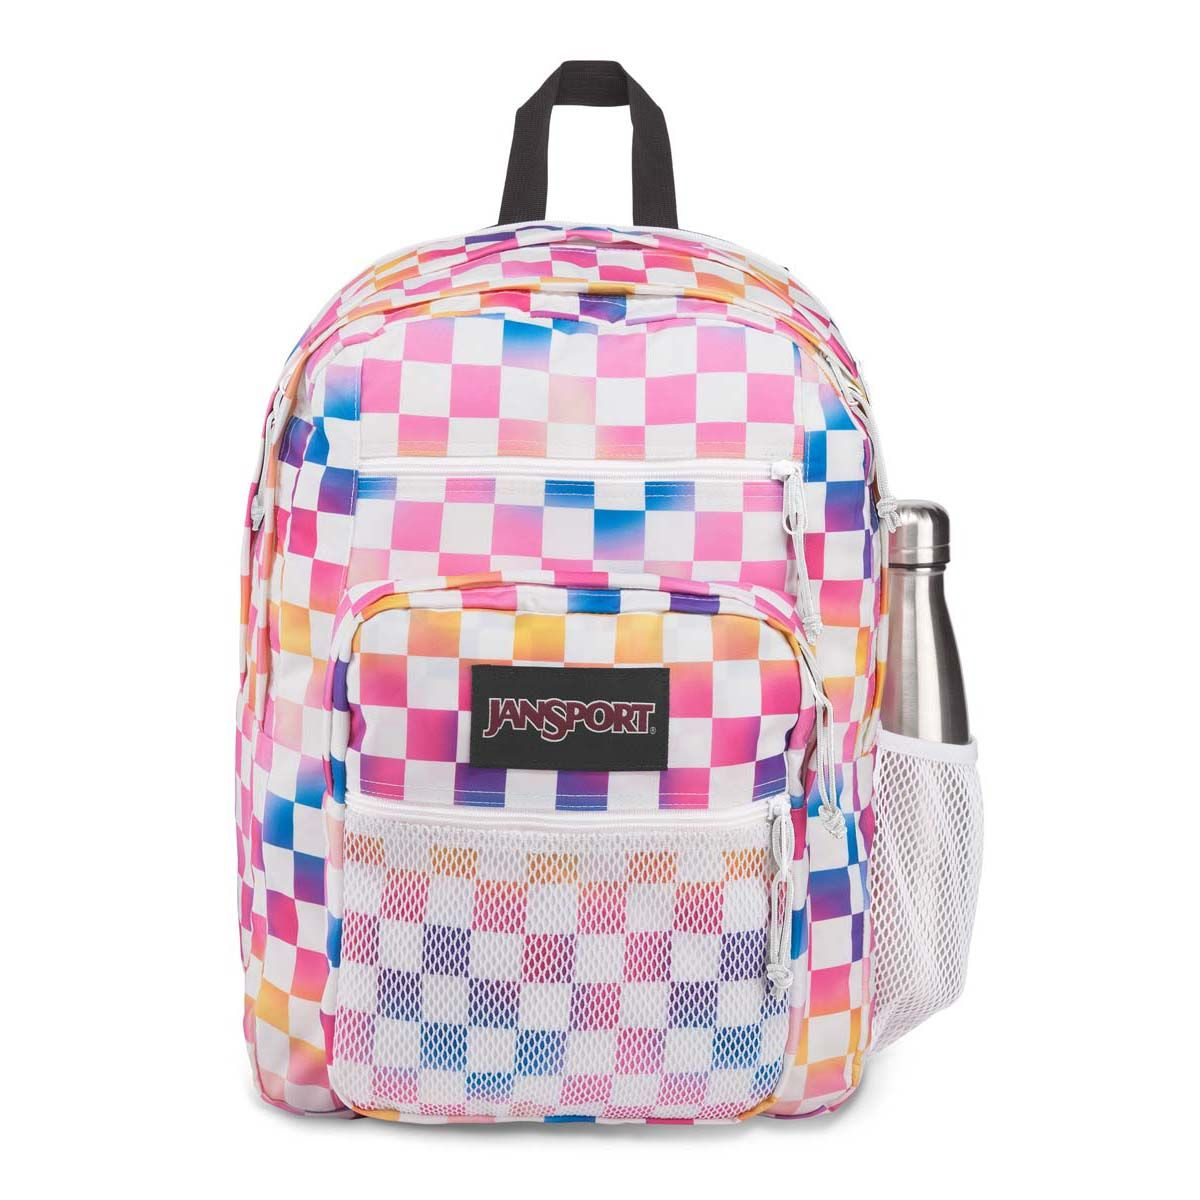 JanSport Big Campus Backpack in Check It